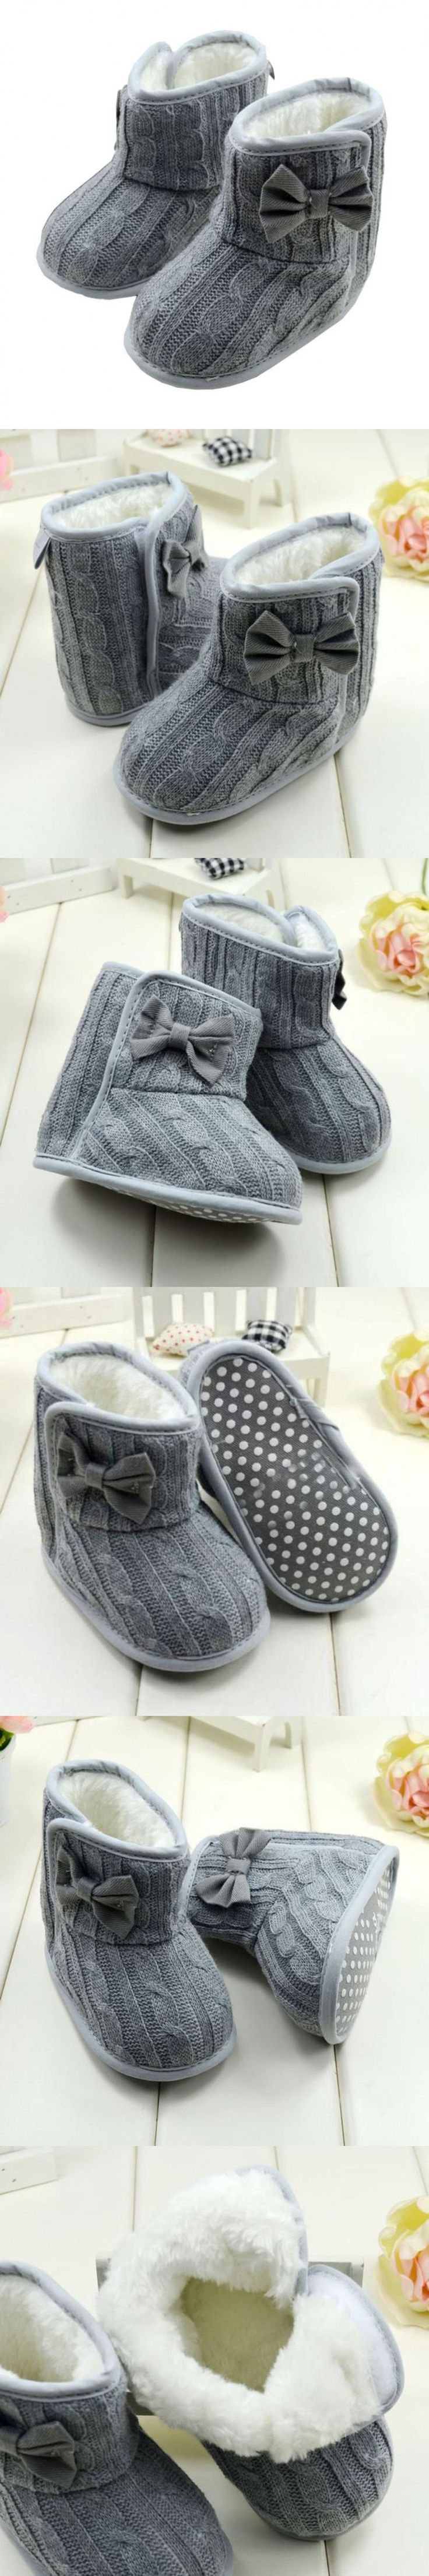 Kid shoes children girls cute Bowknot baby winter boots kids first walkers baby boots baby shoes newborn boost sapatos great $4.23